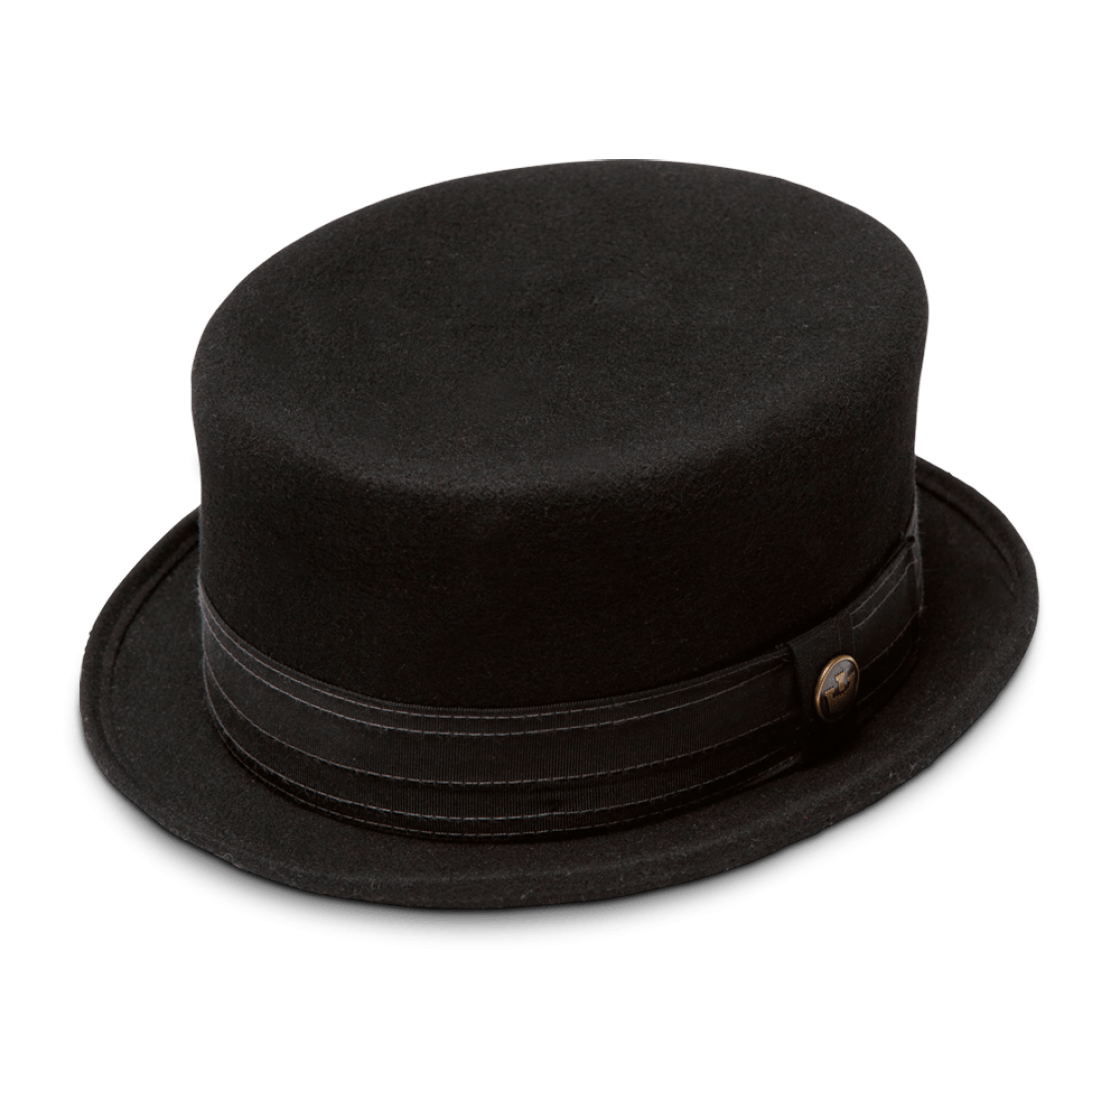 Hat Png Image PNG Image